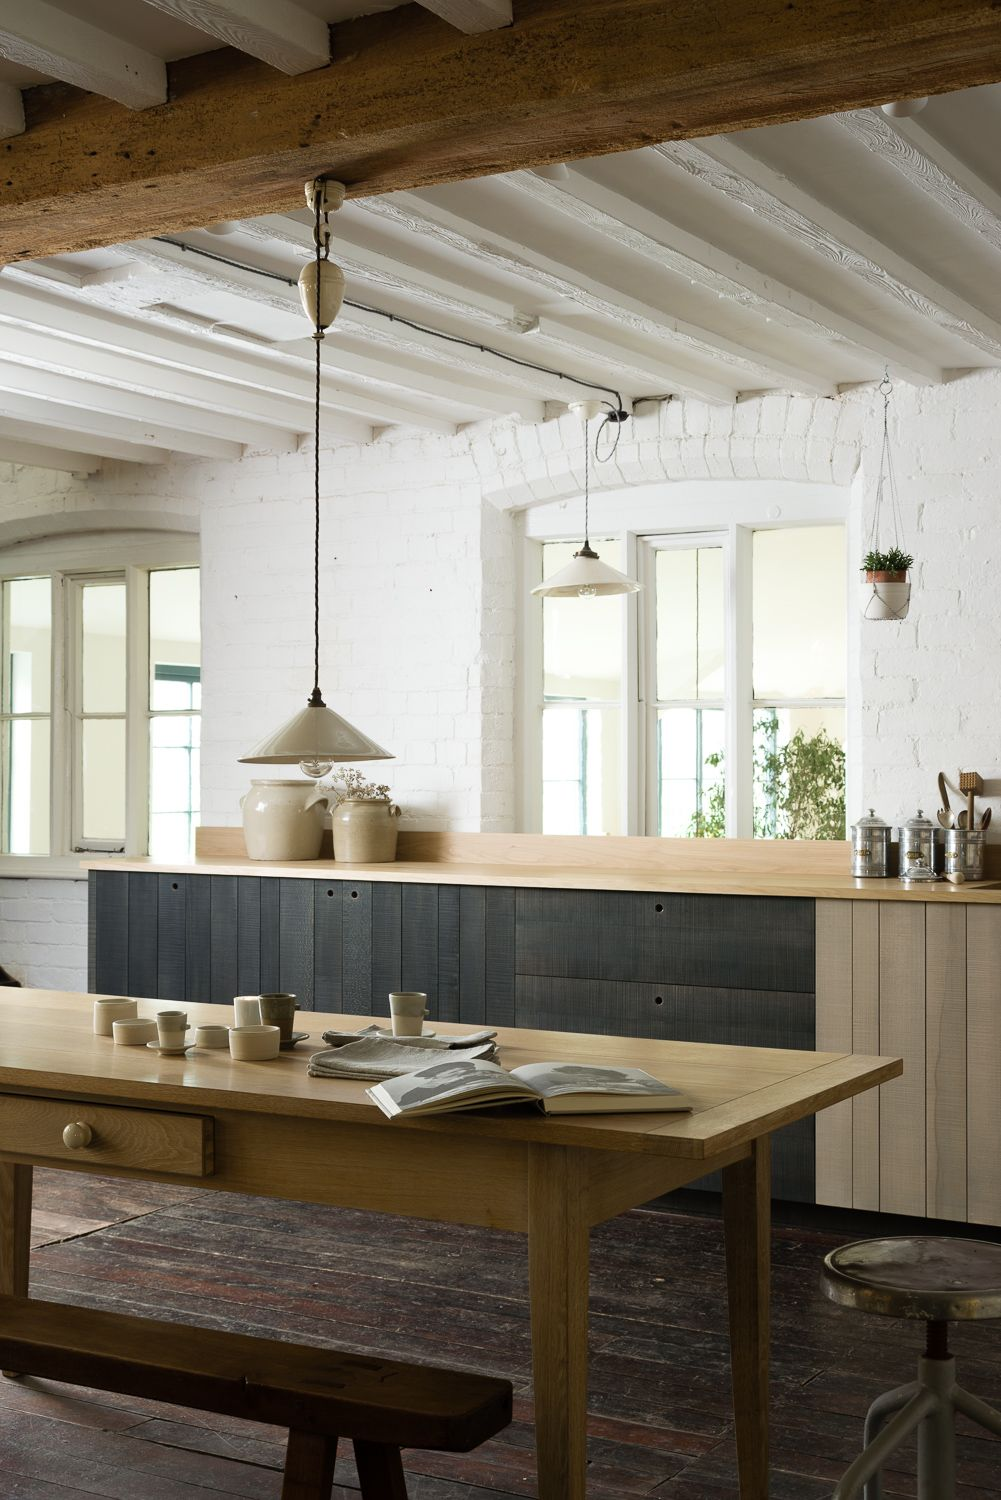 the beautiful sawn beech cabinets are stained with an inky blue ...